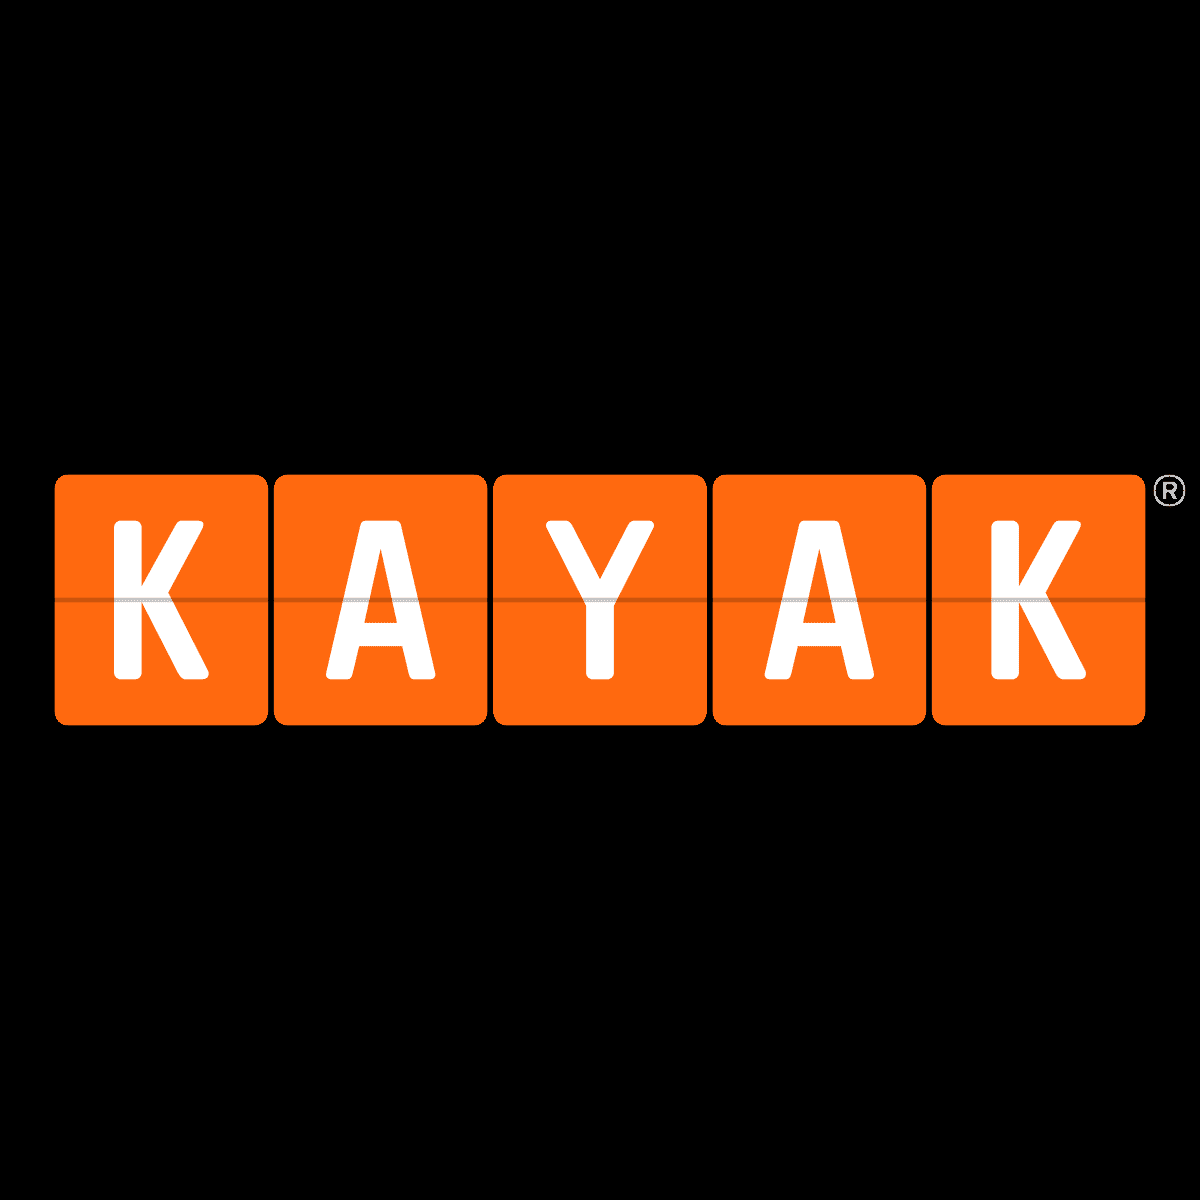 All Inclusive Vacations to Mexico for under $125 at Kayak.com